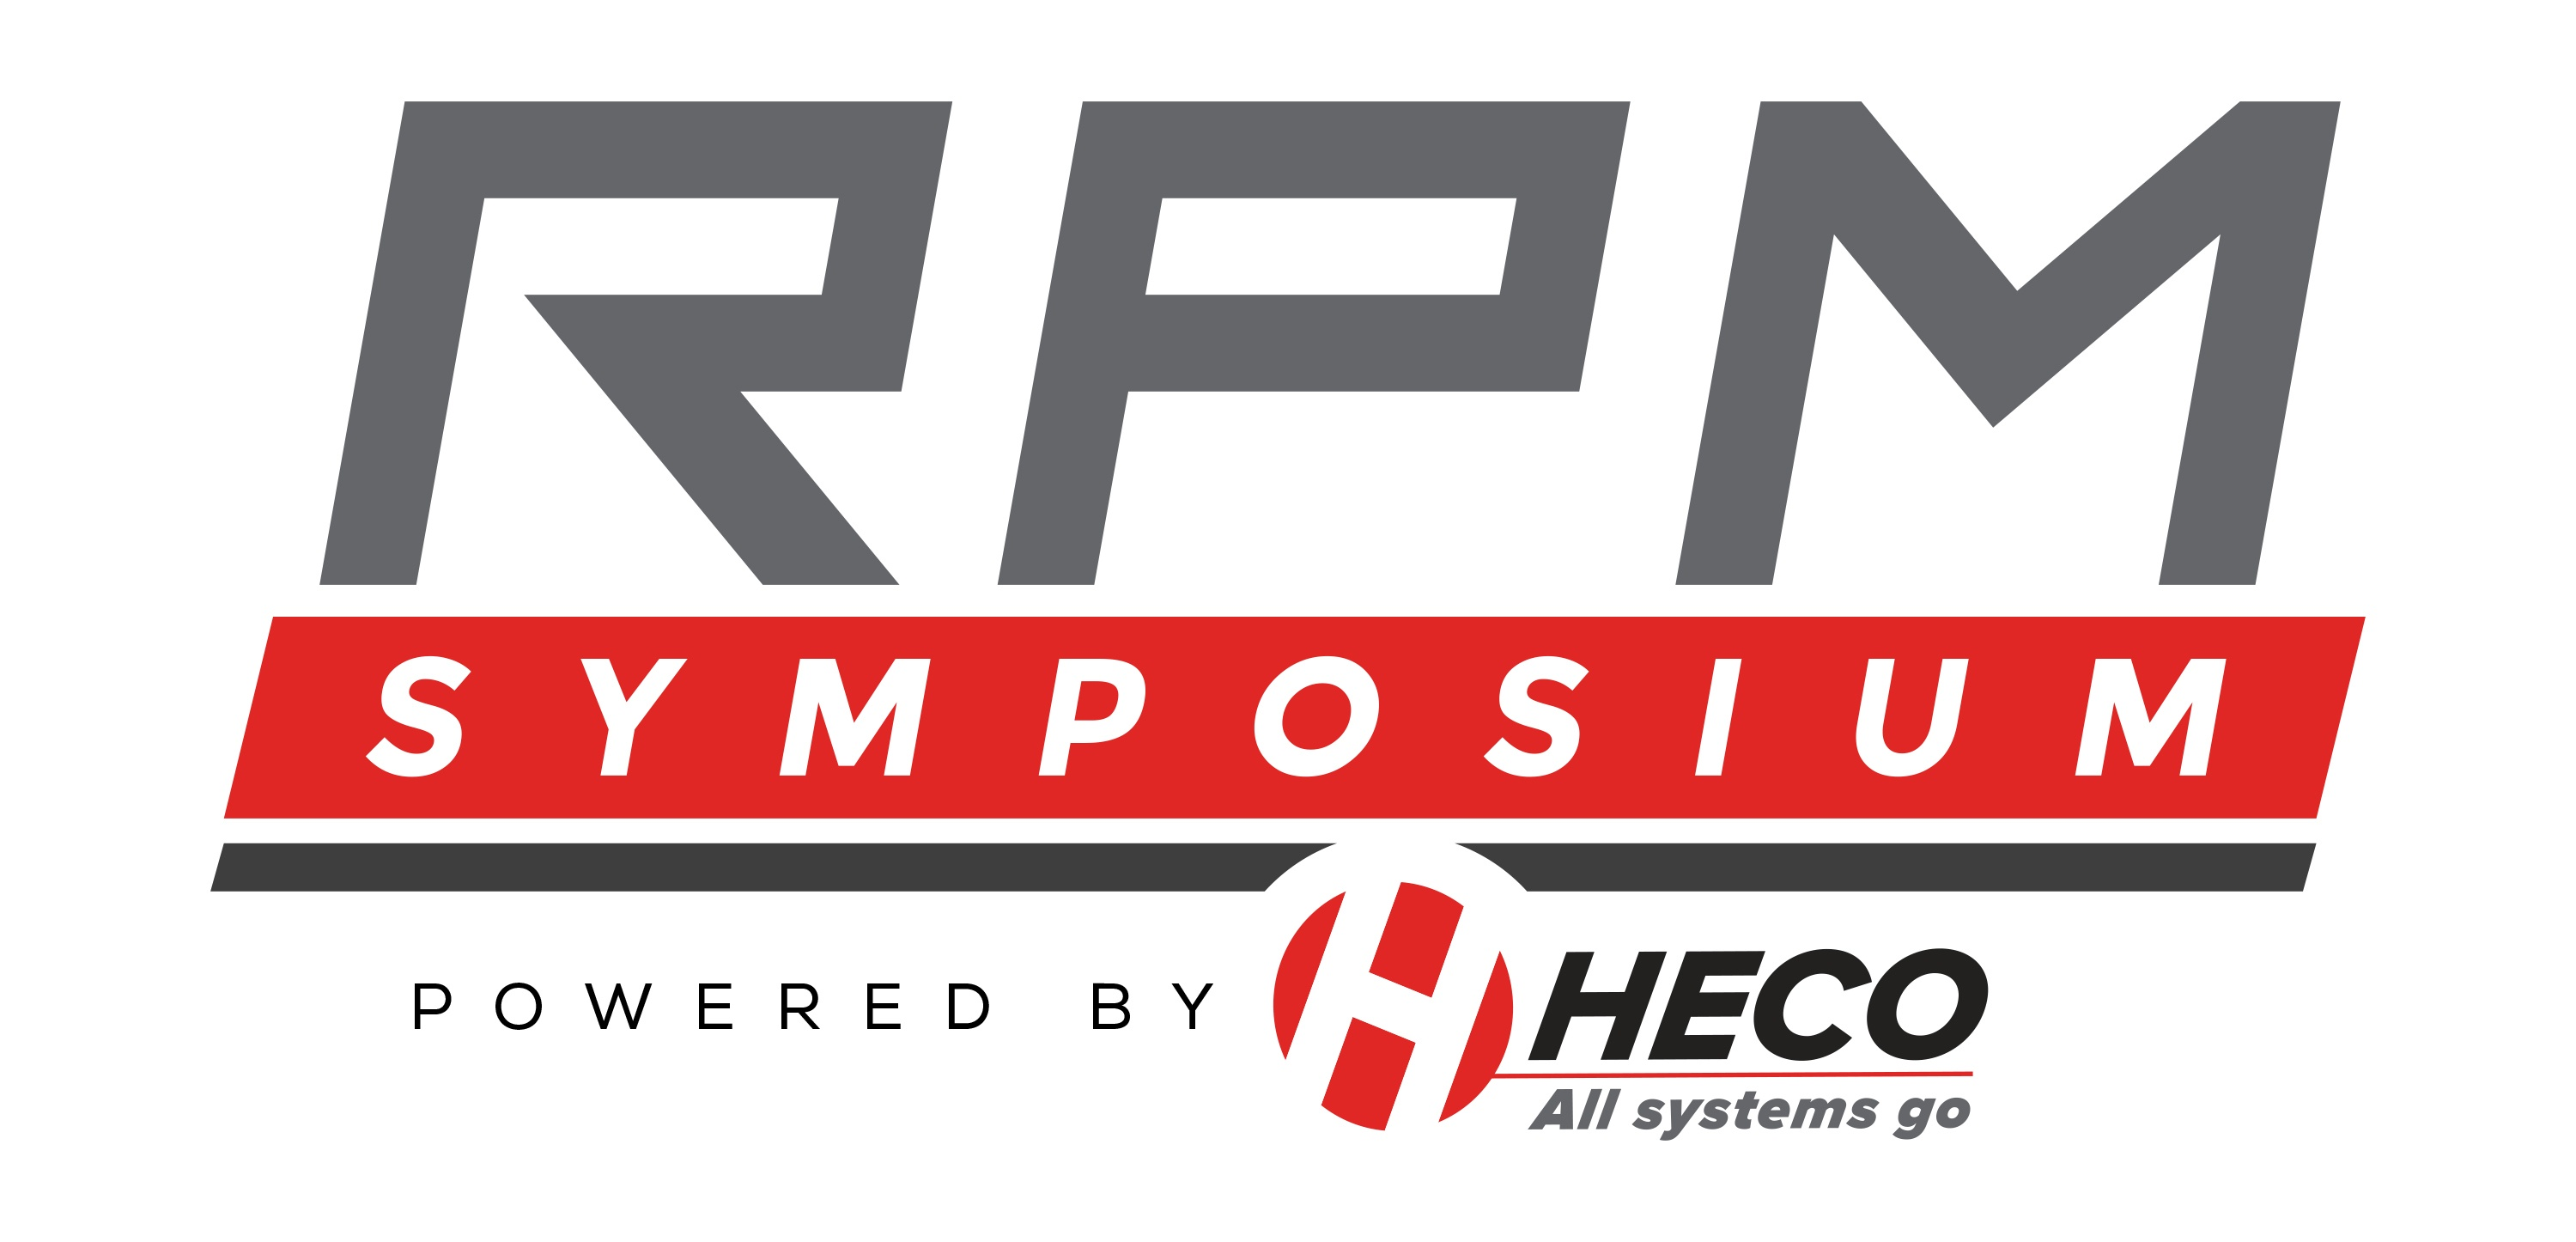 Attend HECO's 2021 RPM Symposium in Kalamazoo